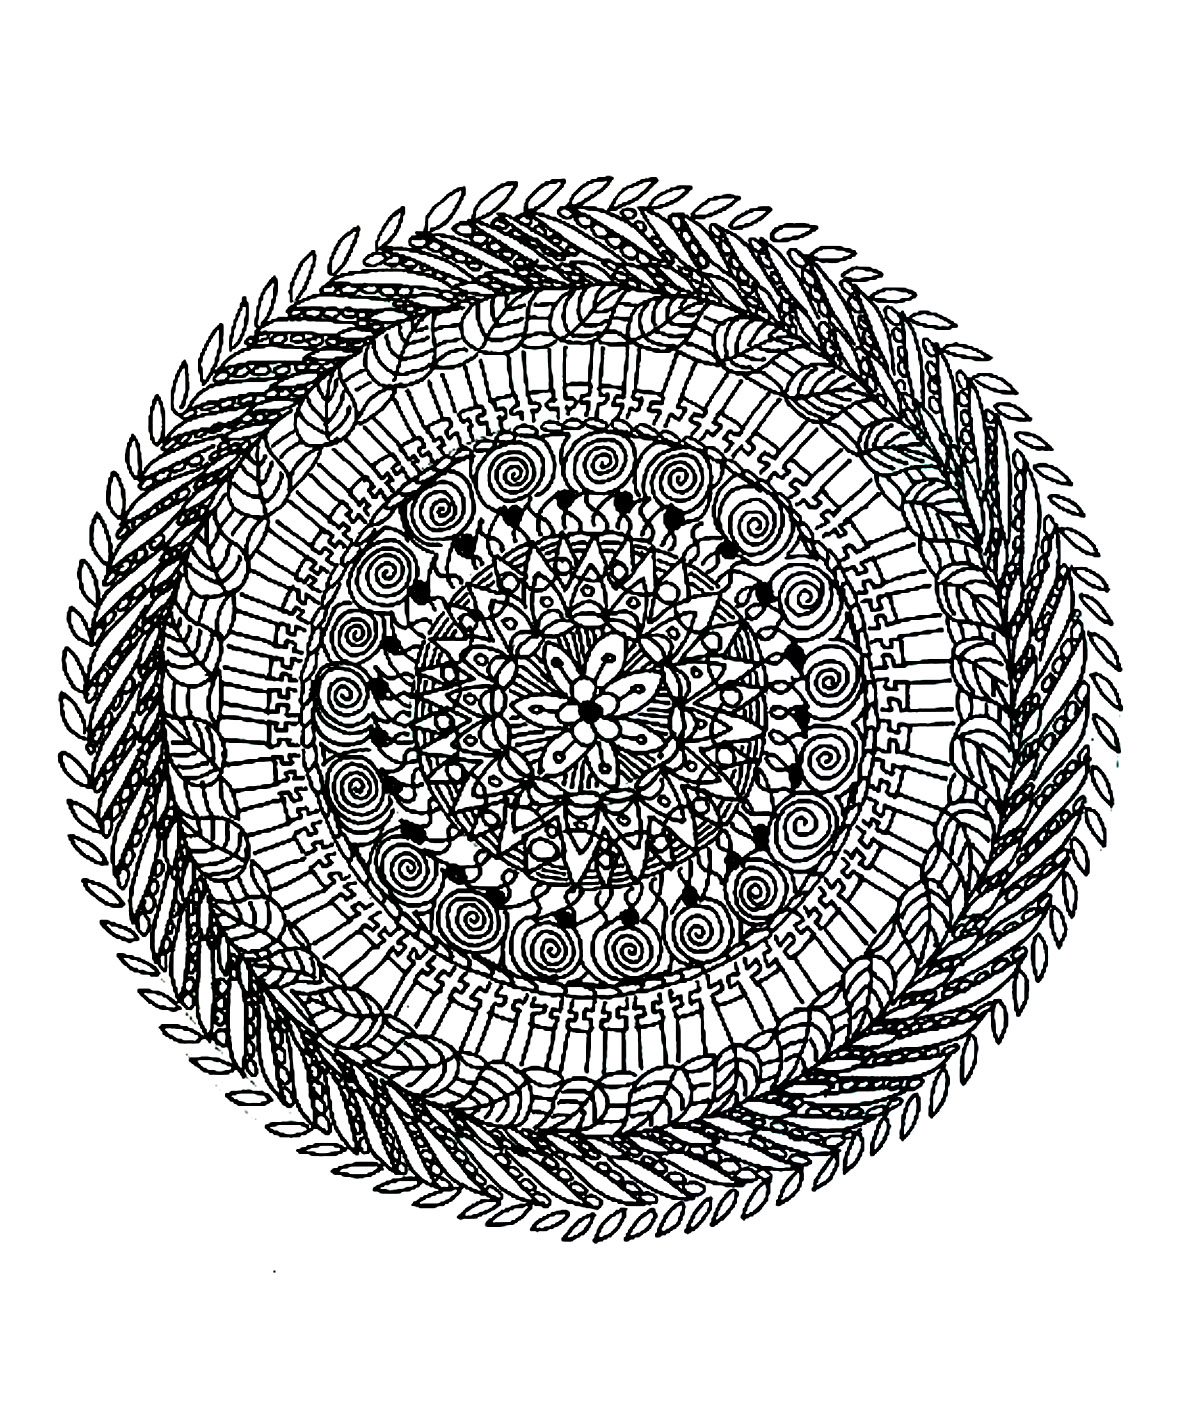 Mandala coloring page with different types of leaves. Prepare very fine pens and pencils, because this Mandala needs to be very meticulous, precise and picky, to get a good quality result.